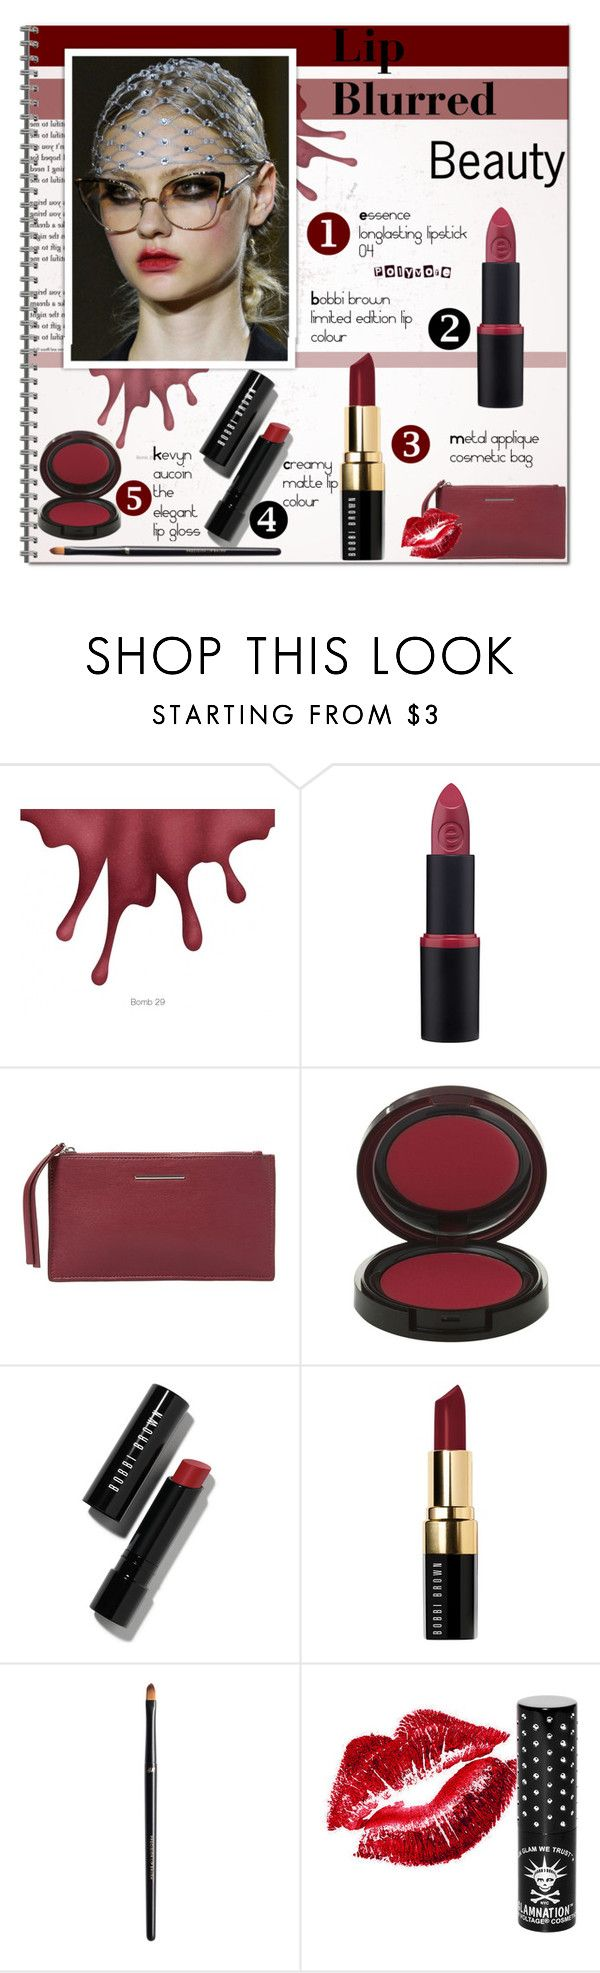 """""""BEAUTY: Lip Blurred!!!!!"""" by alves-nogueira ❤ liked on Polyvore featuring MANGO, Kevyn Aucoin, Bobbi Brown Cosmetics, H&M, Manic Panic NYC, Beauty and LIPSTICK"""